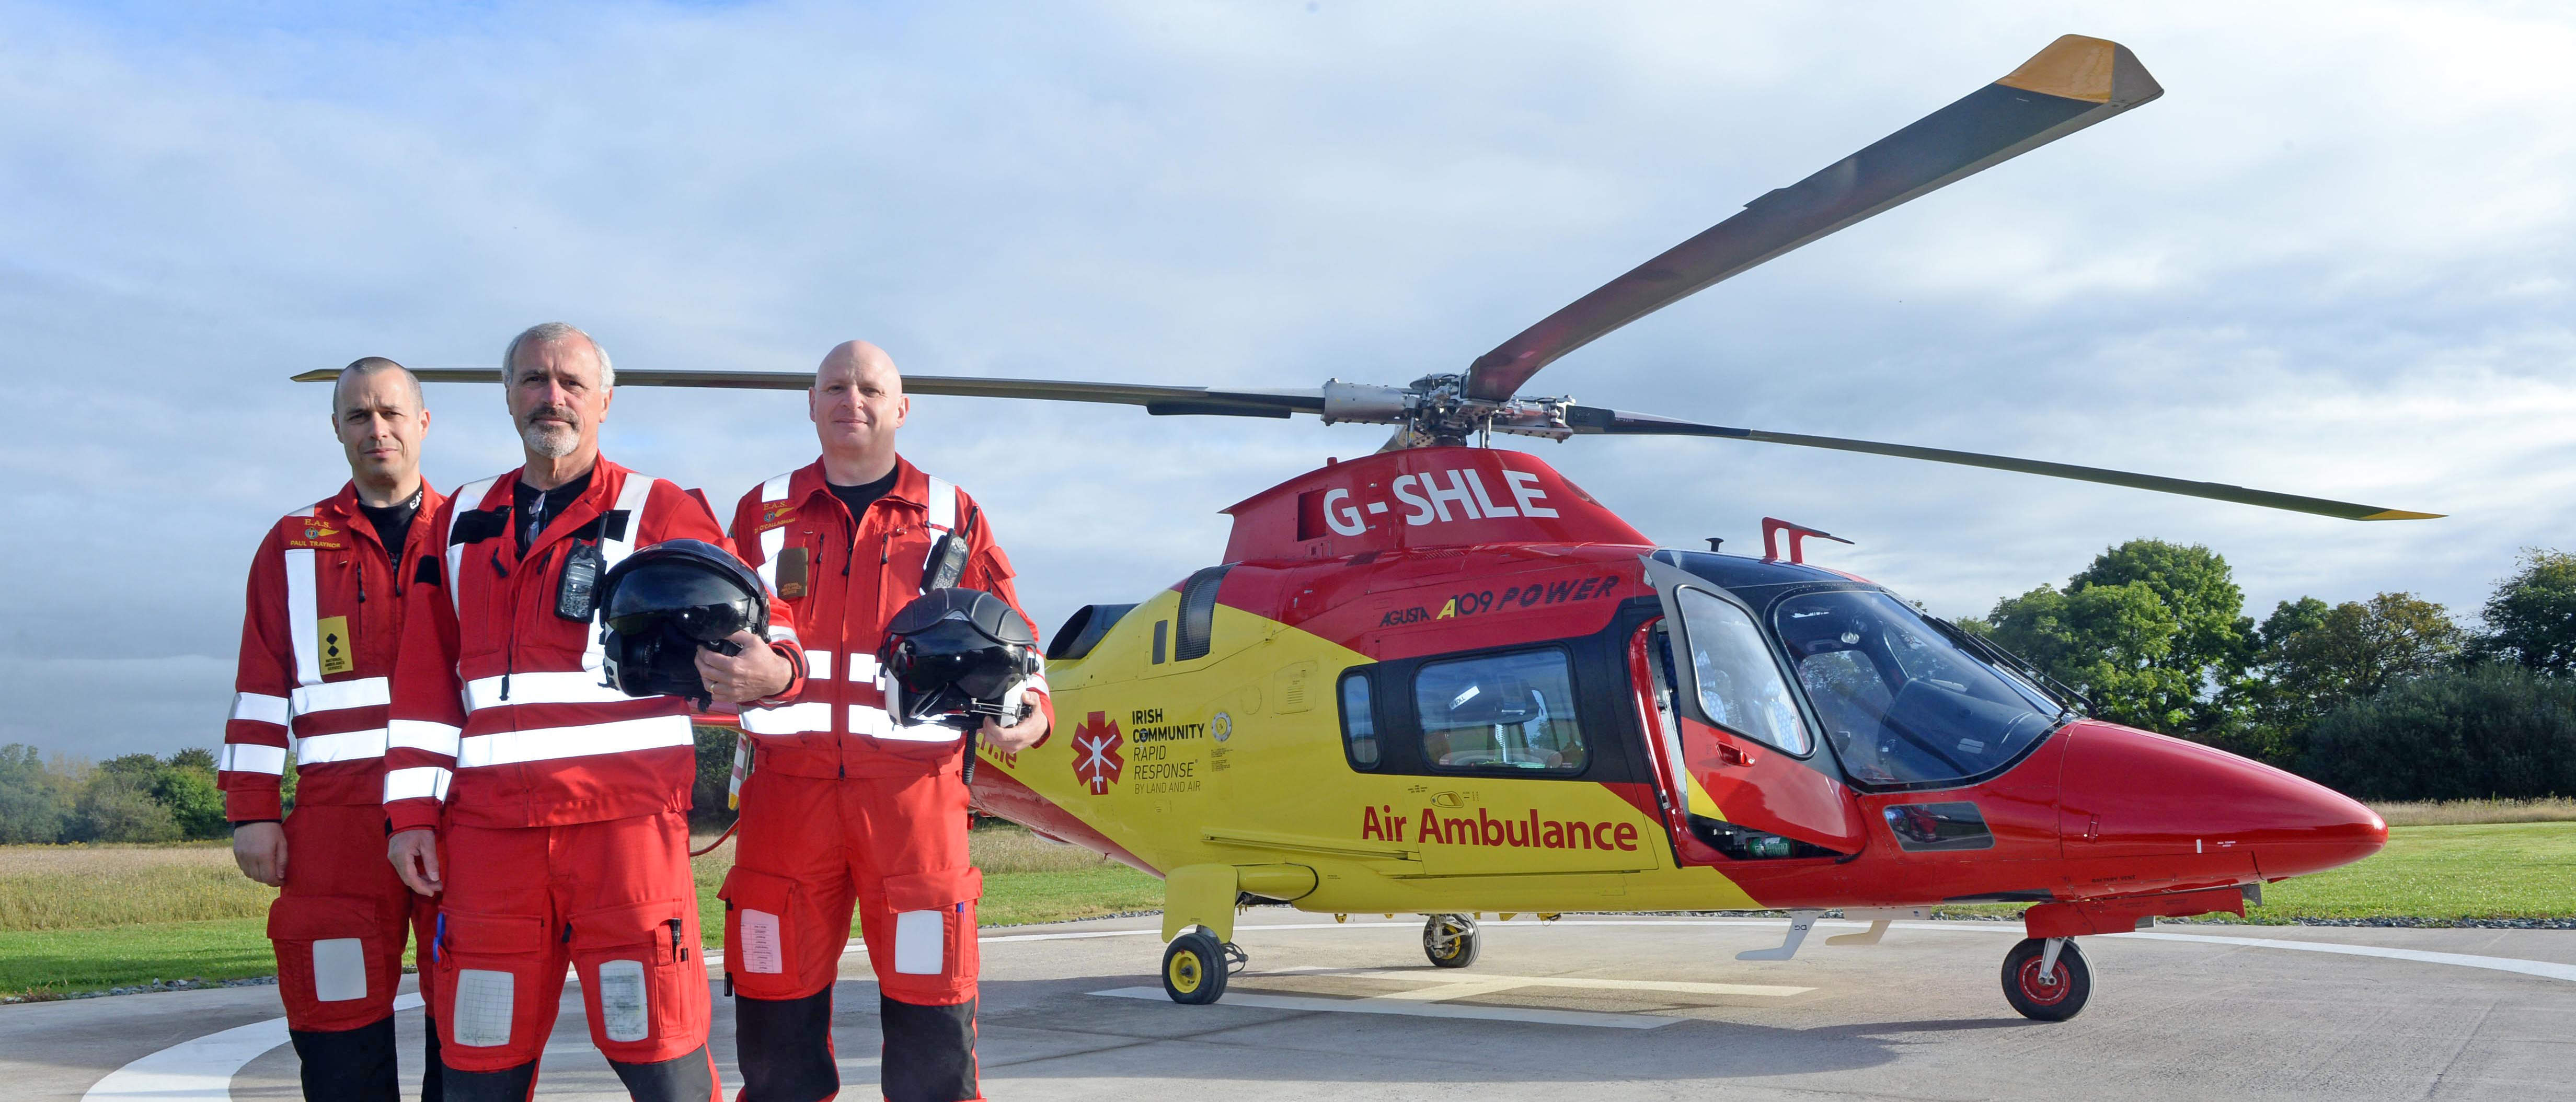 Irish Charity Air Ambulance delivers 56 missions in first month